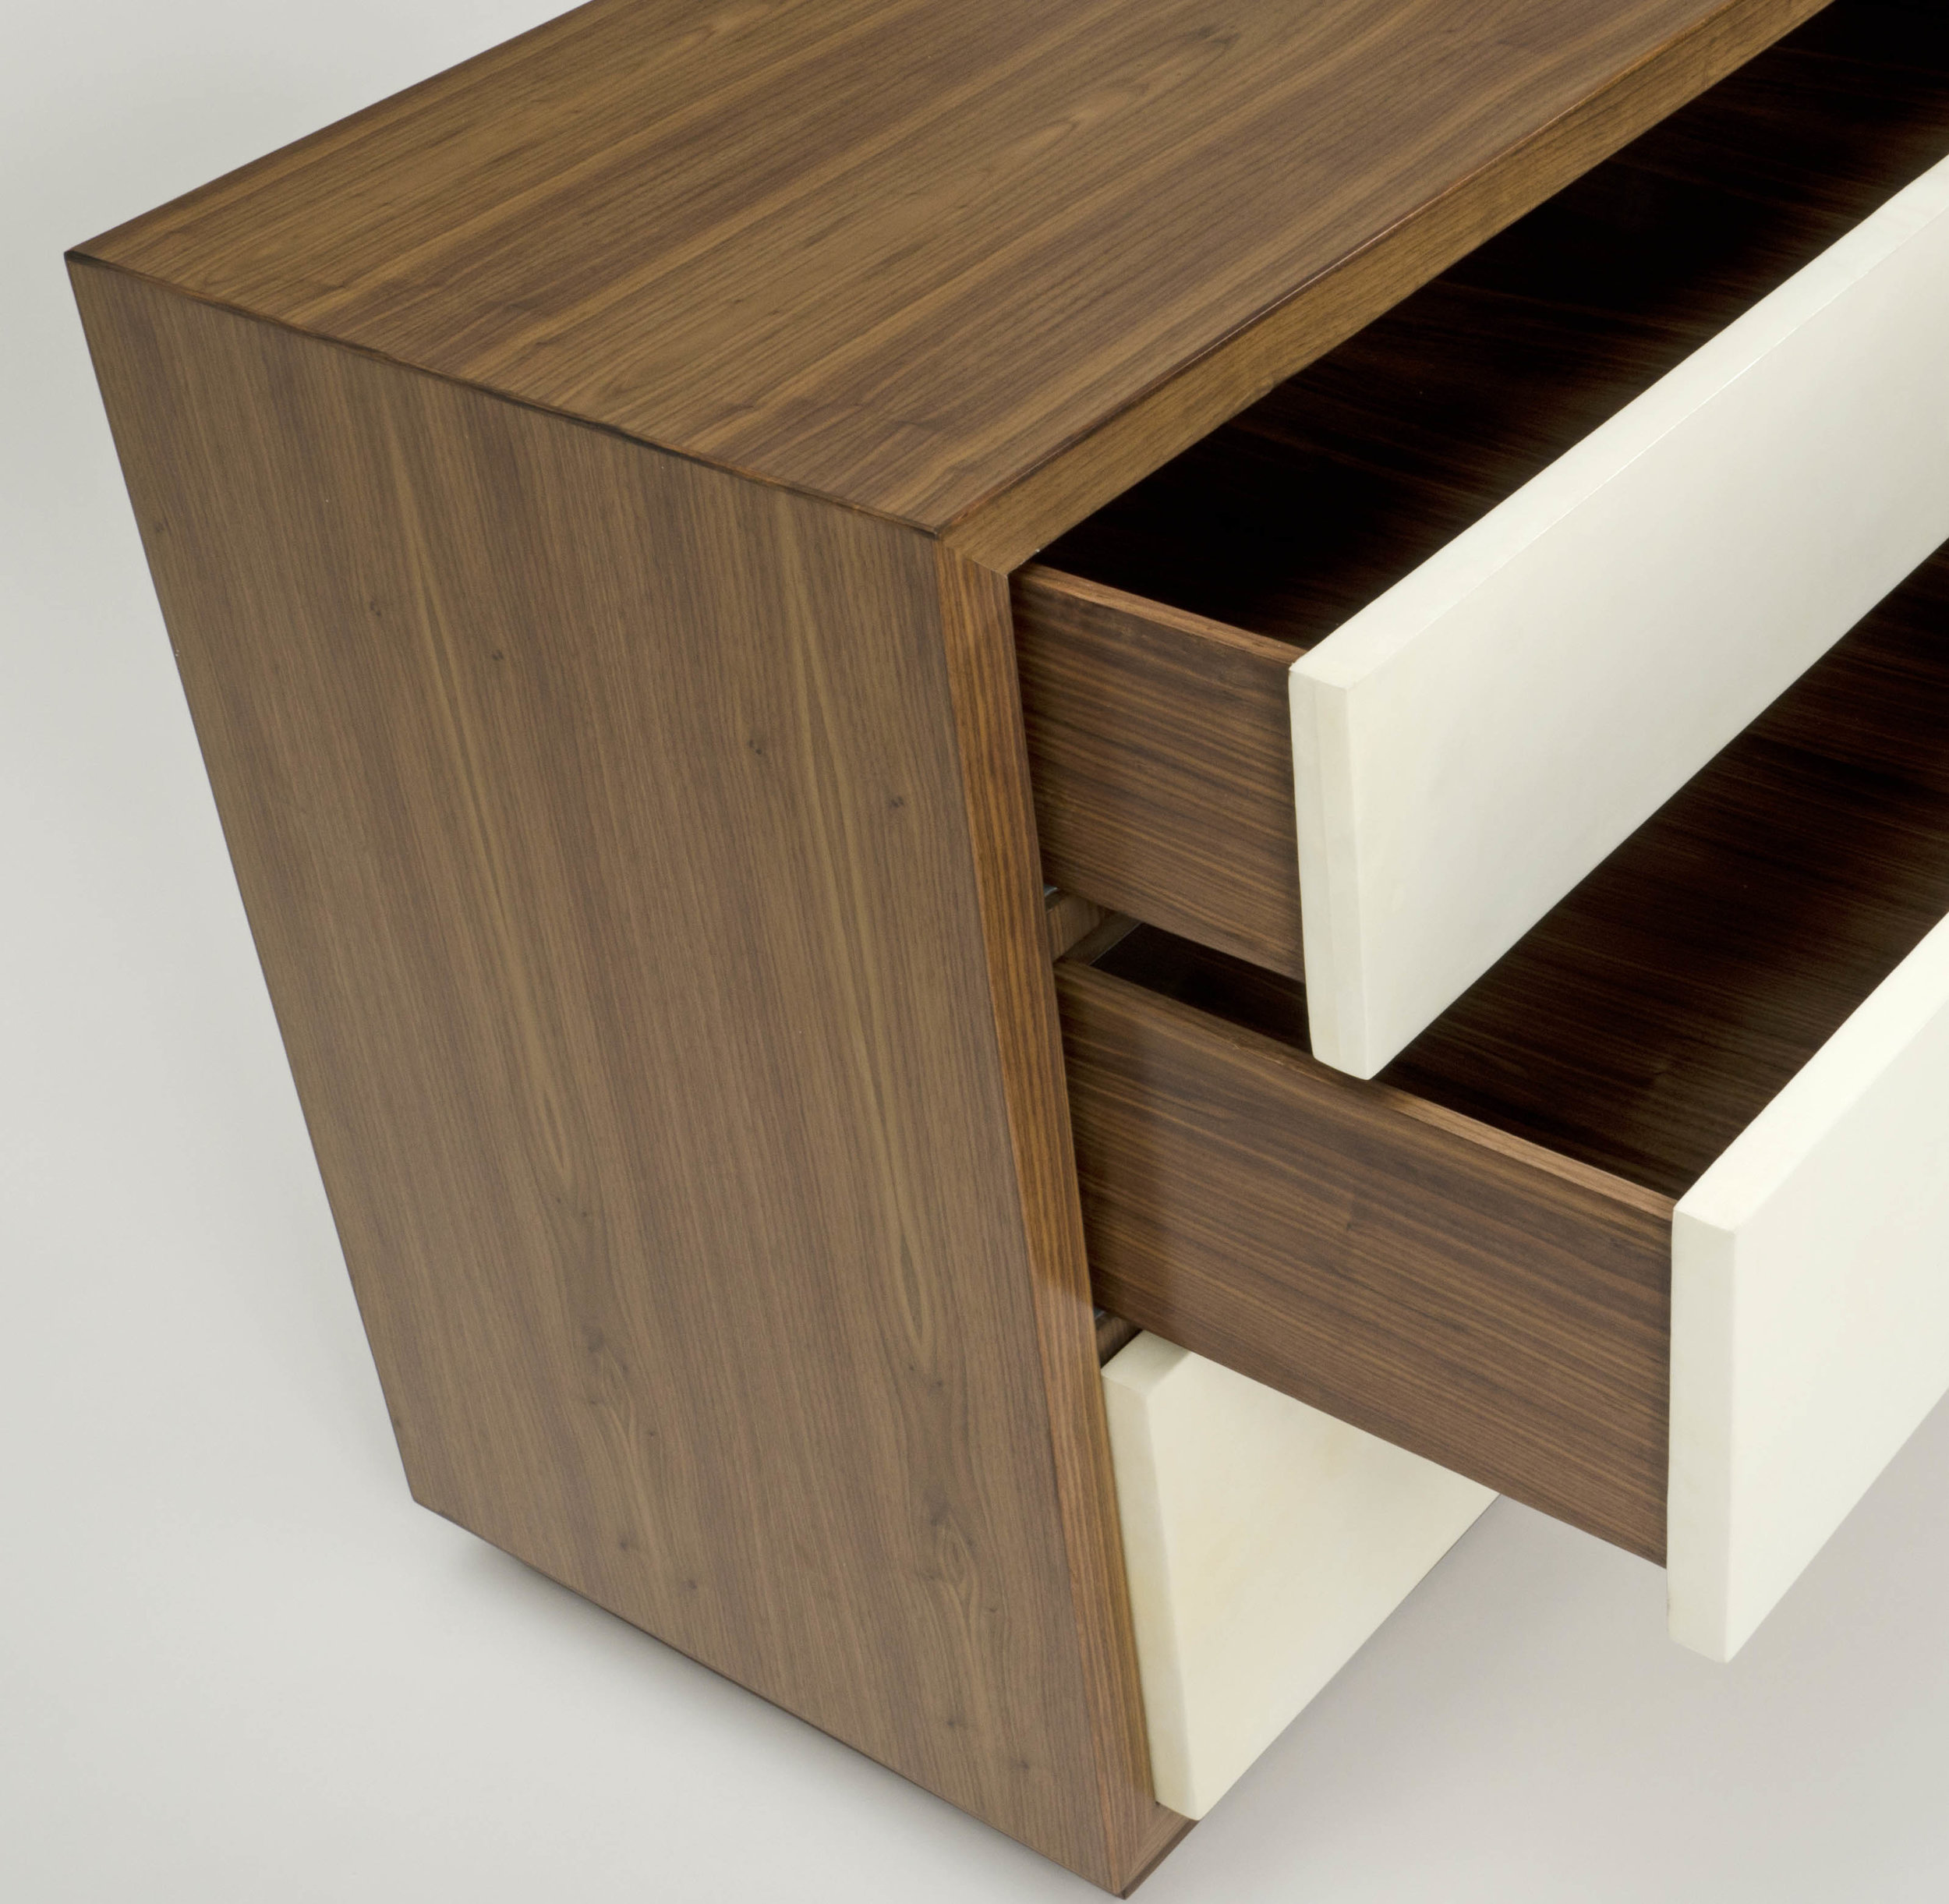 William_chest_angle_drawers.jpg